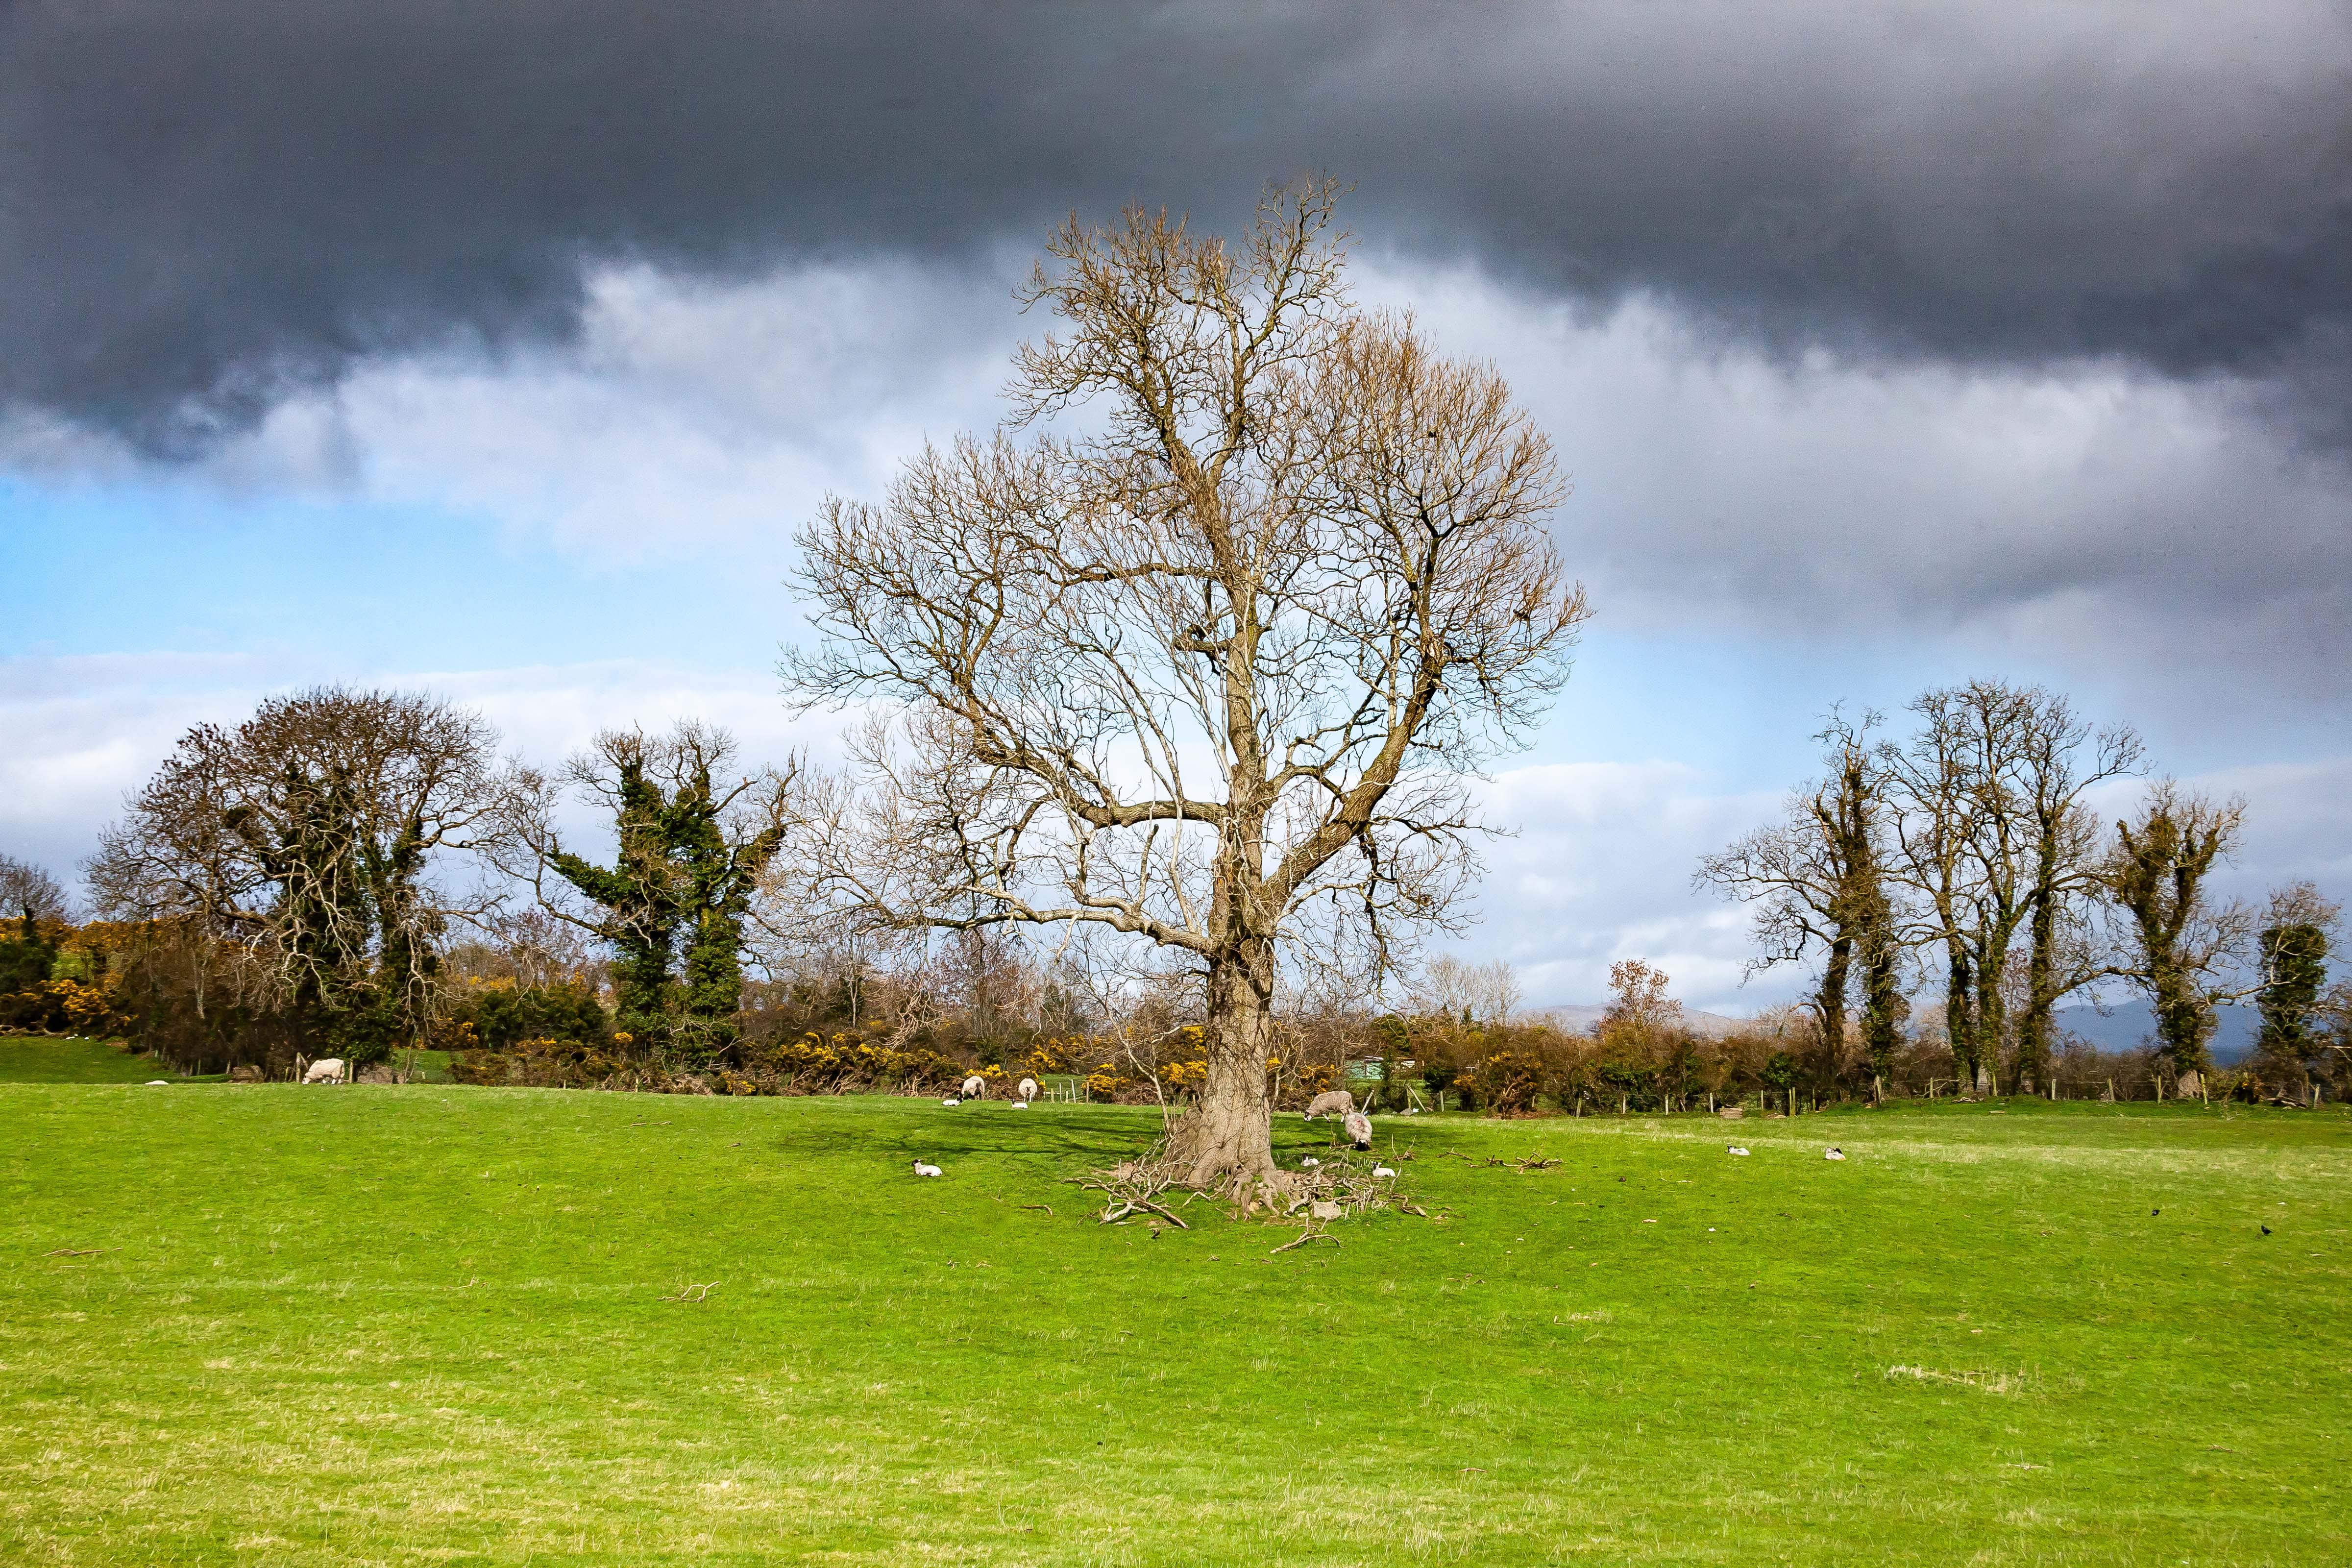 N Ireland, Banbridge Prov, Tree, 2009, IMG 9891